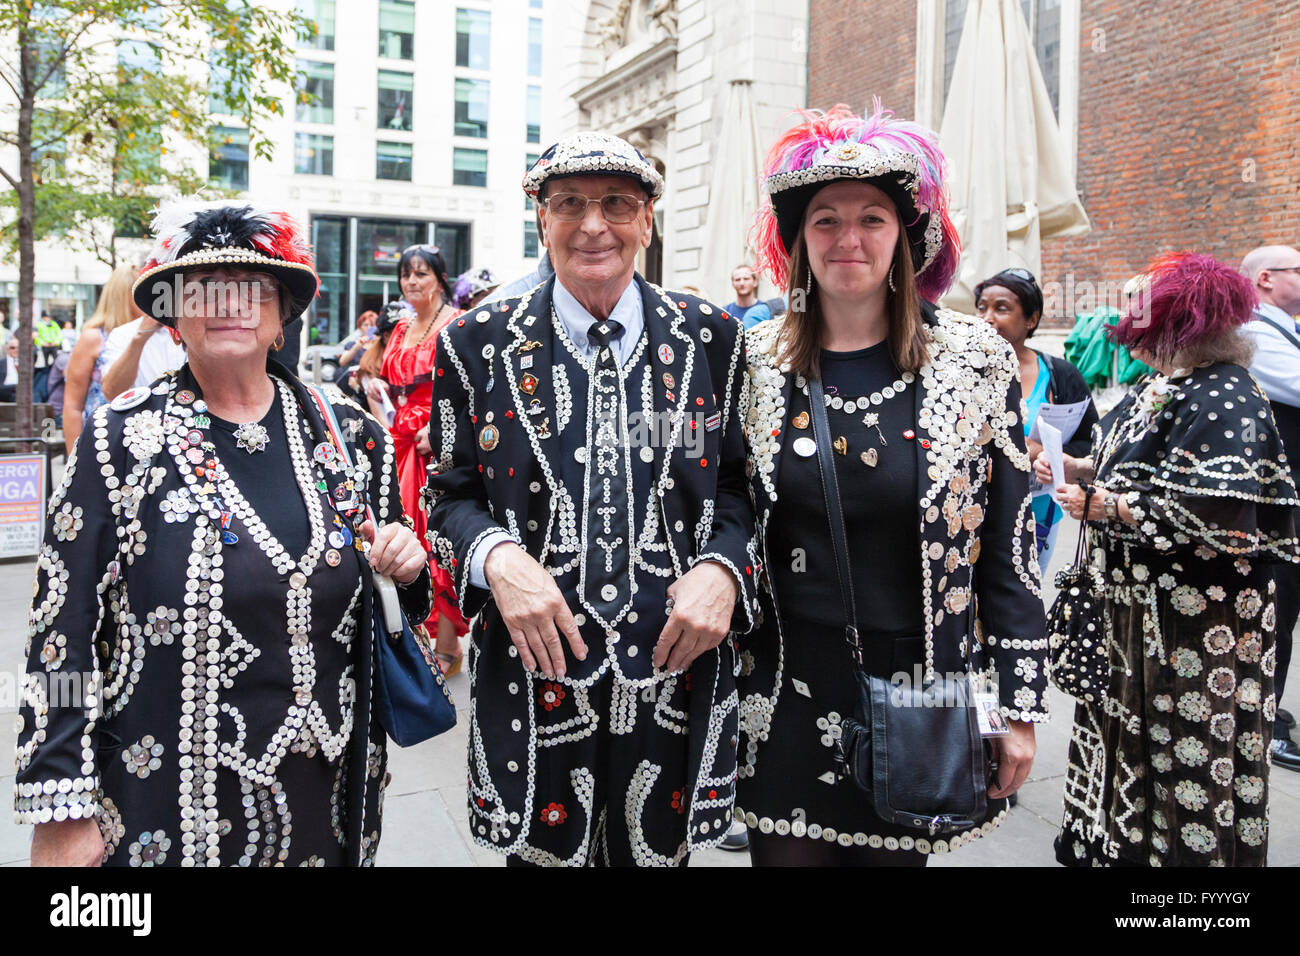 Pearly King and Queen of Crystal Palace, Carole (l) and Pat (m) Jolly, Nicola Marshall (r), Pearly Queen of Welwyn - Stock Image